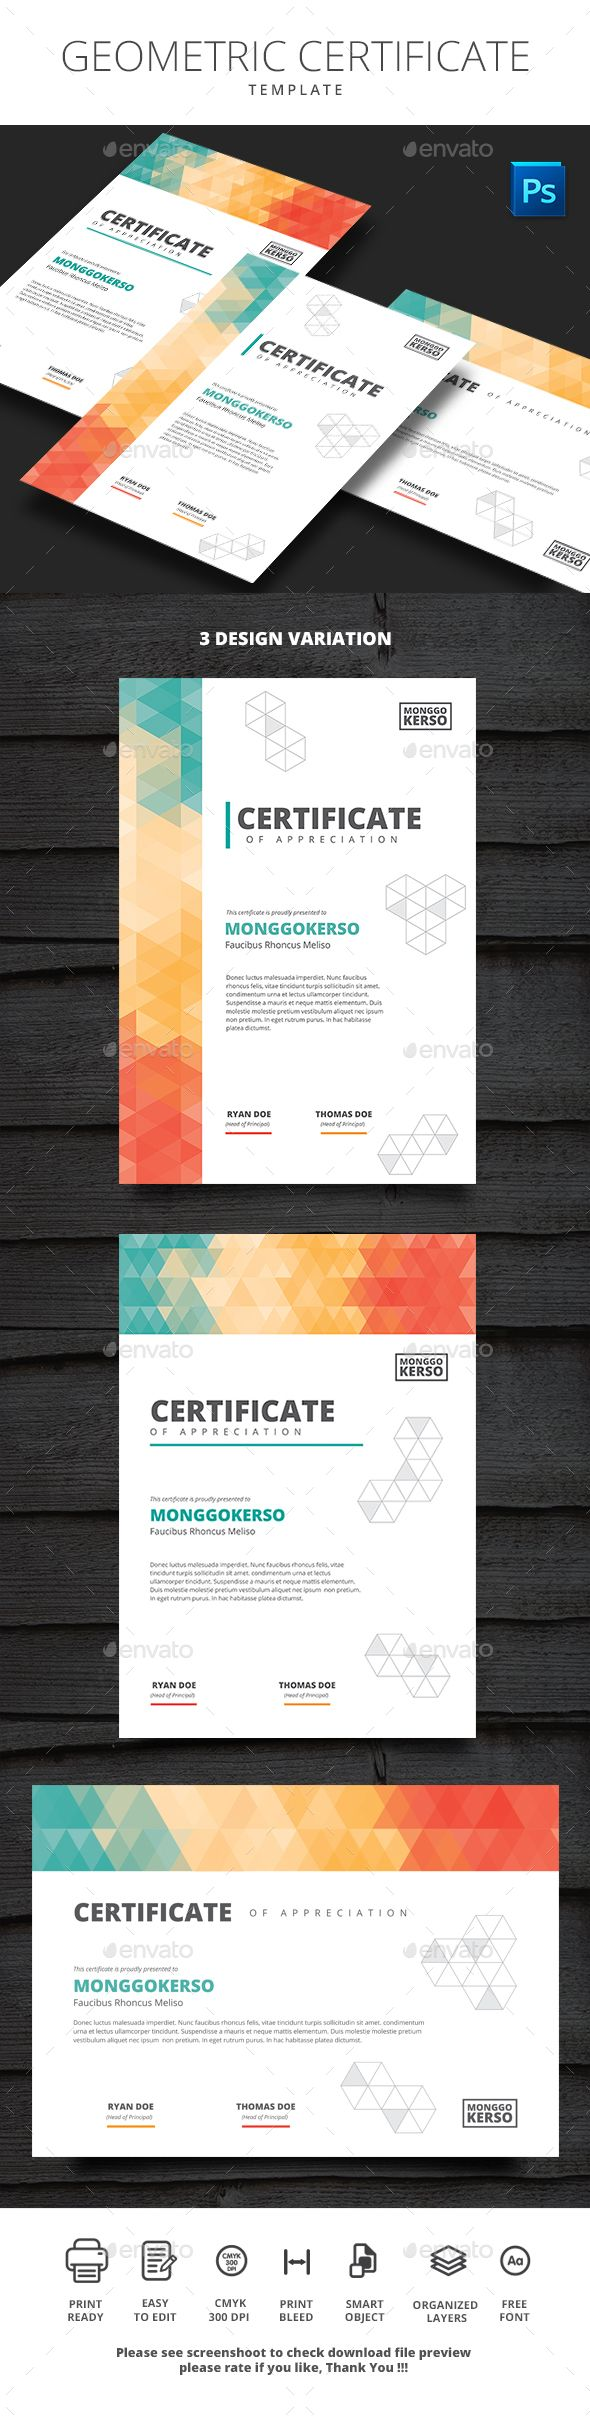 Geometric Certificate — Photoshop PSD #certificate template #210x297 • Download ➝ https://graphicriver.net/item/geometric-certificate/19696319?ref=pxcr